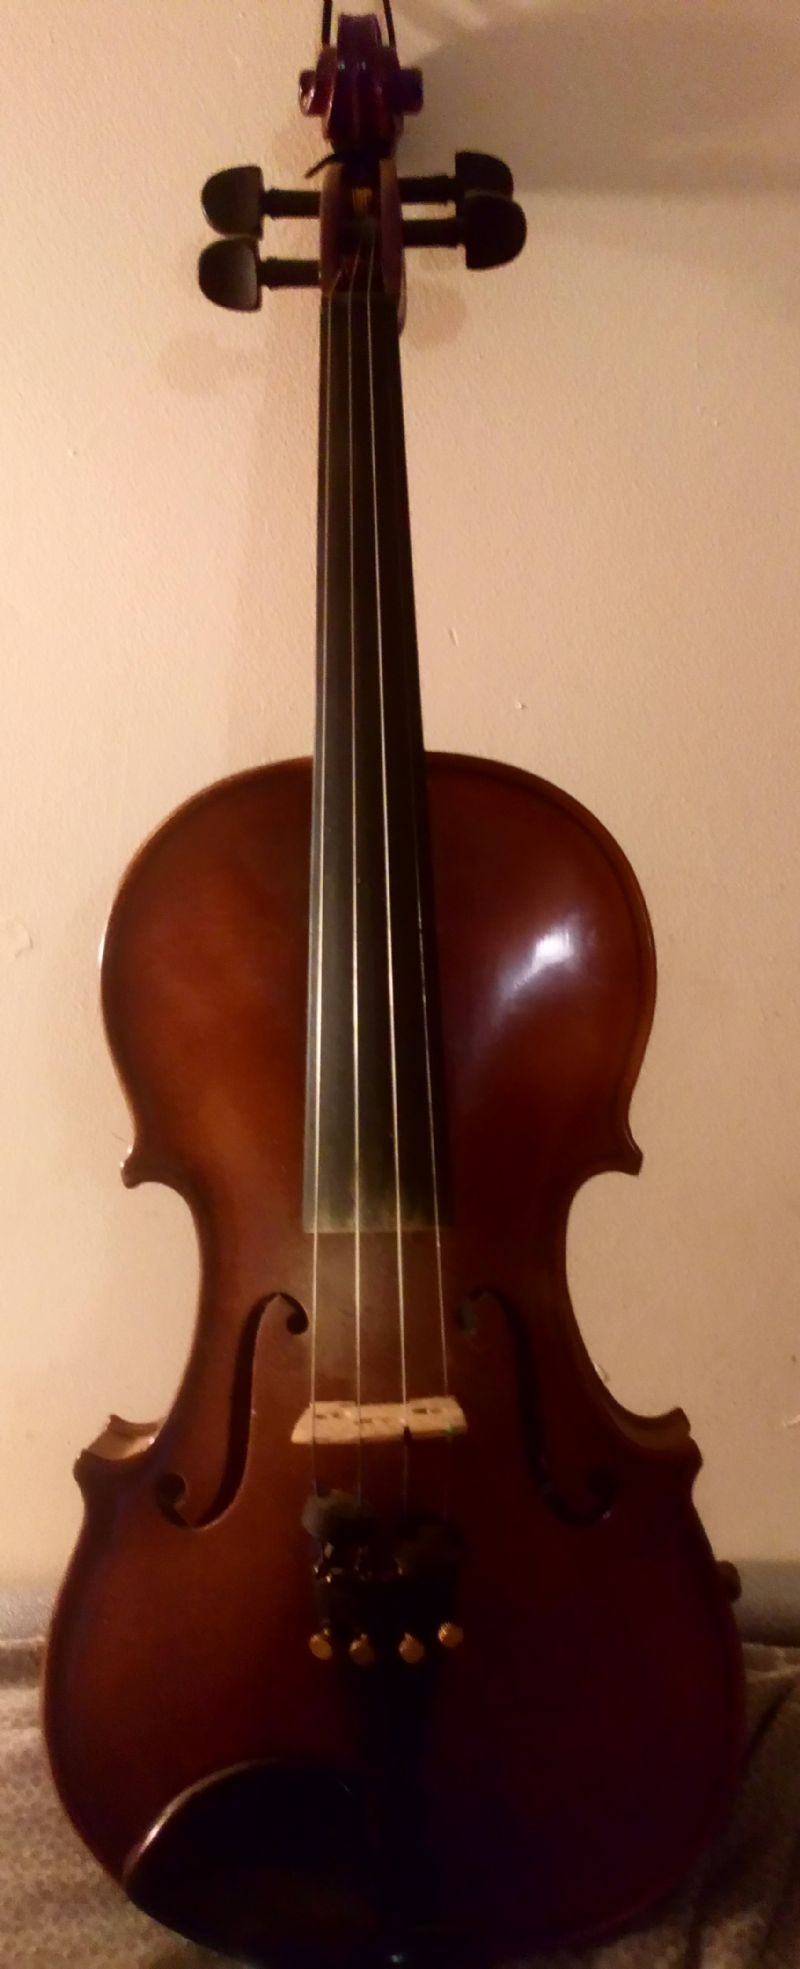 violin prices discussion forums fiddle hangout. Black Bedroom Furniture Sets. Home Design Ideas